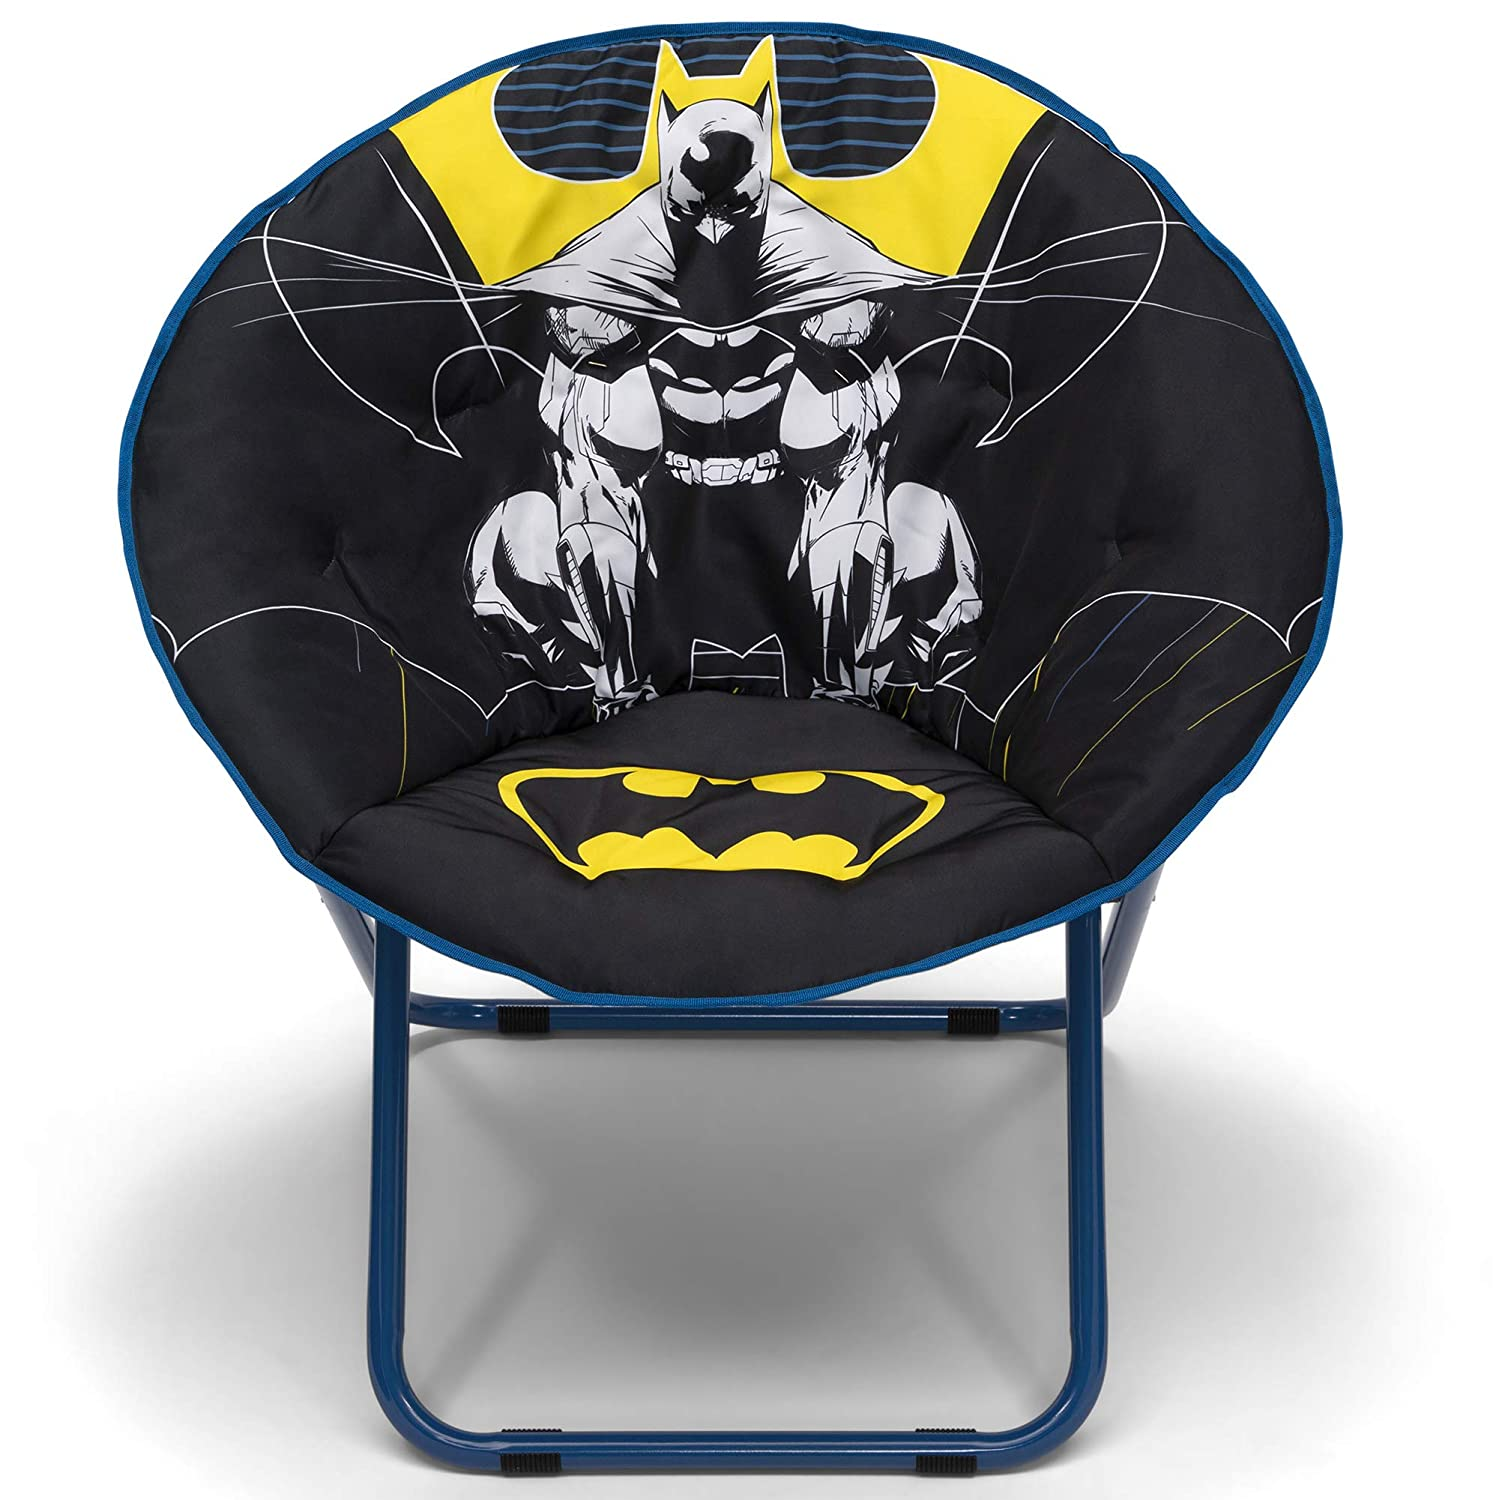 Delta Children Saucer Chair for Kids/Teens/Young Adults, Batman